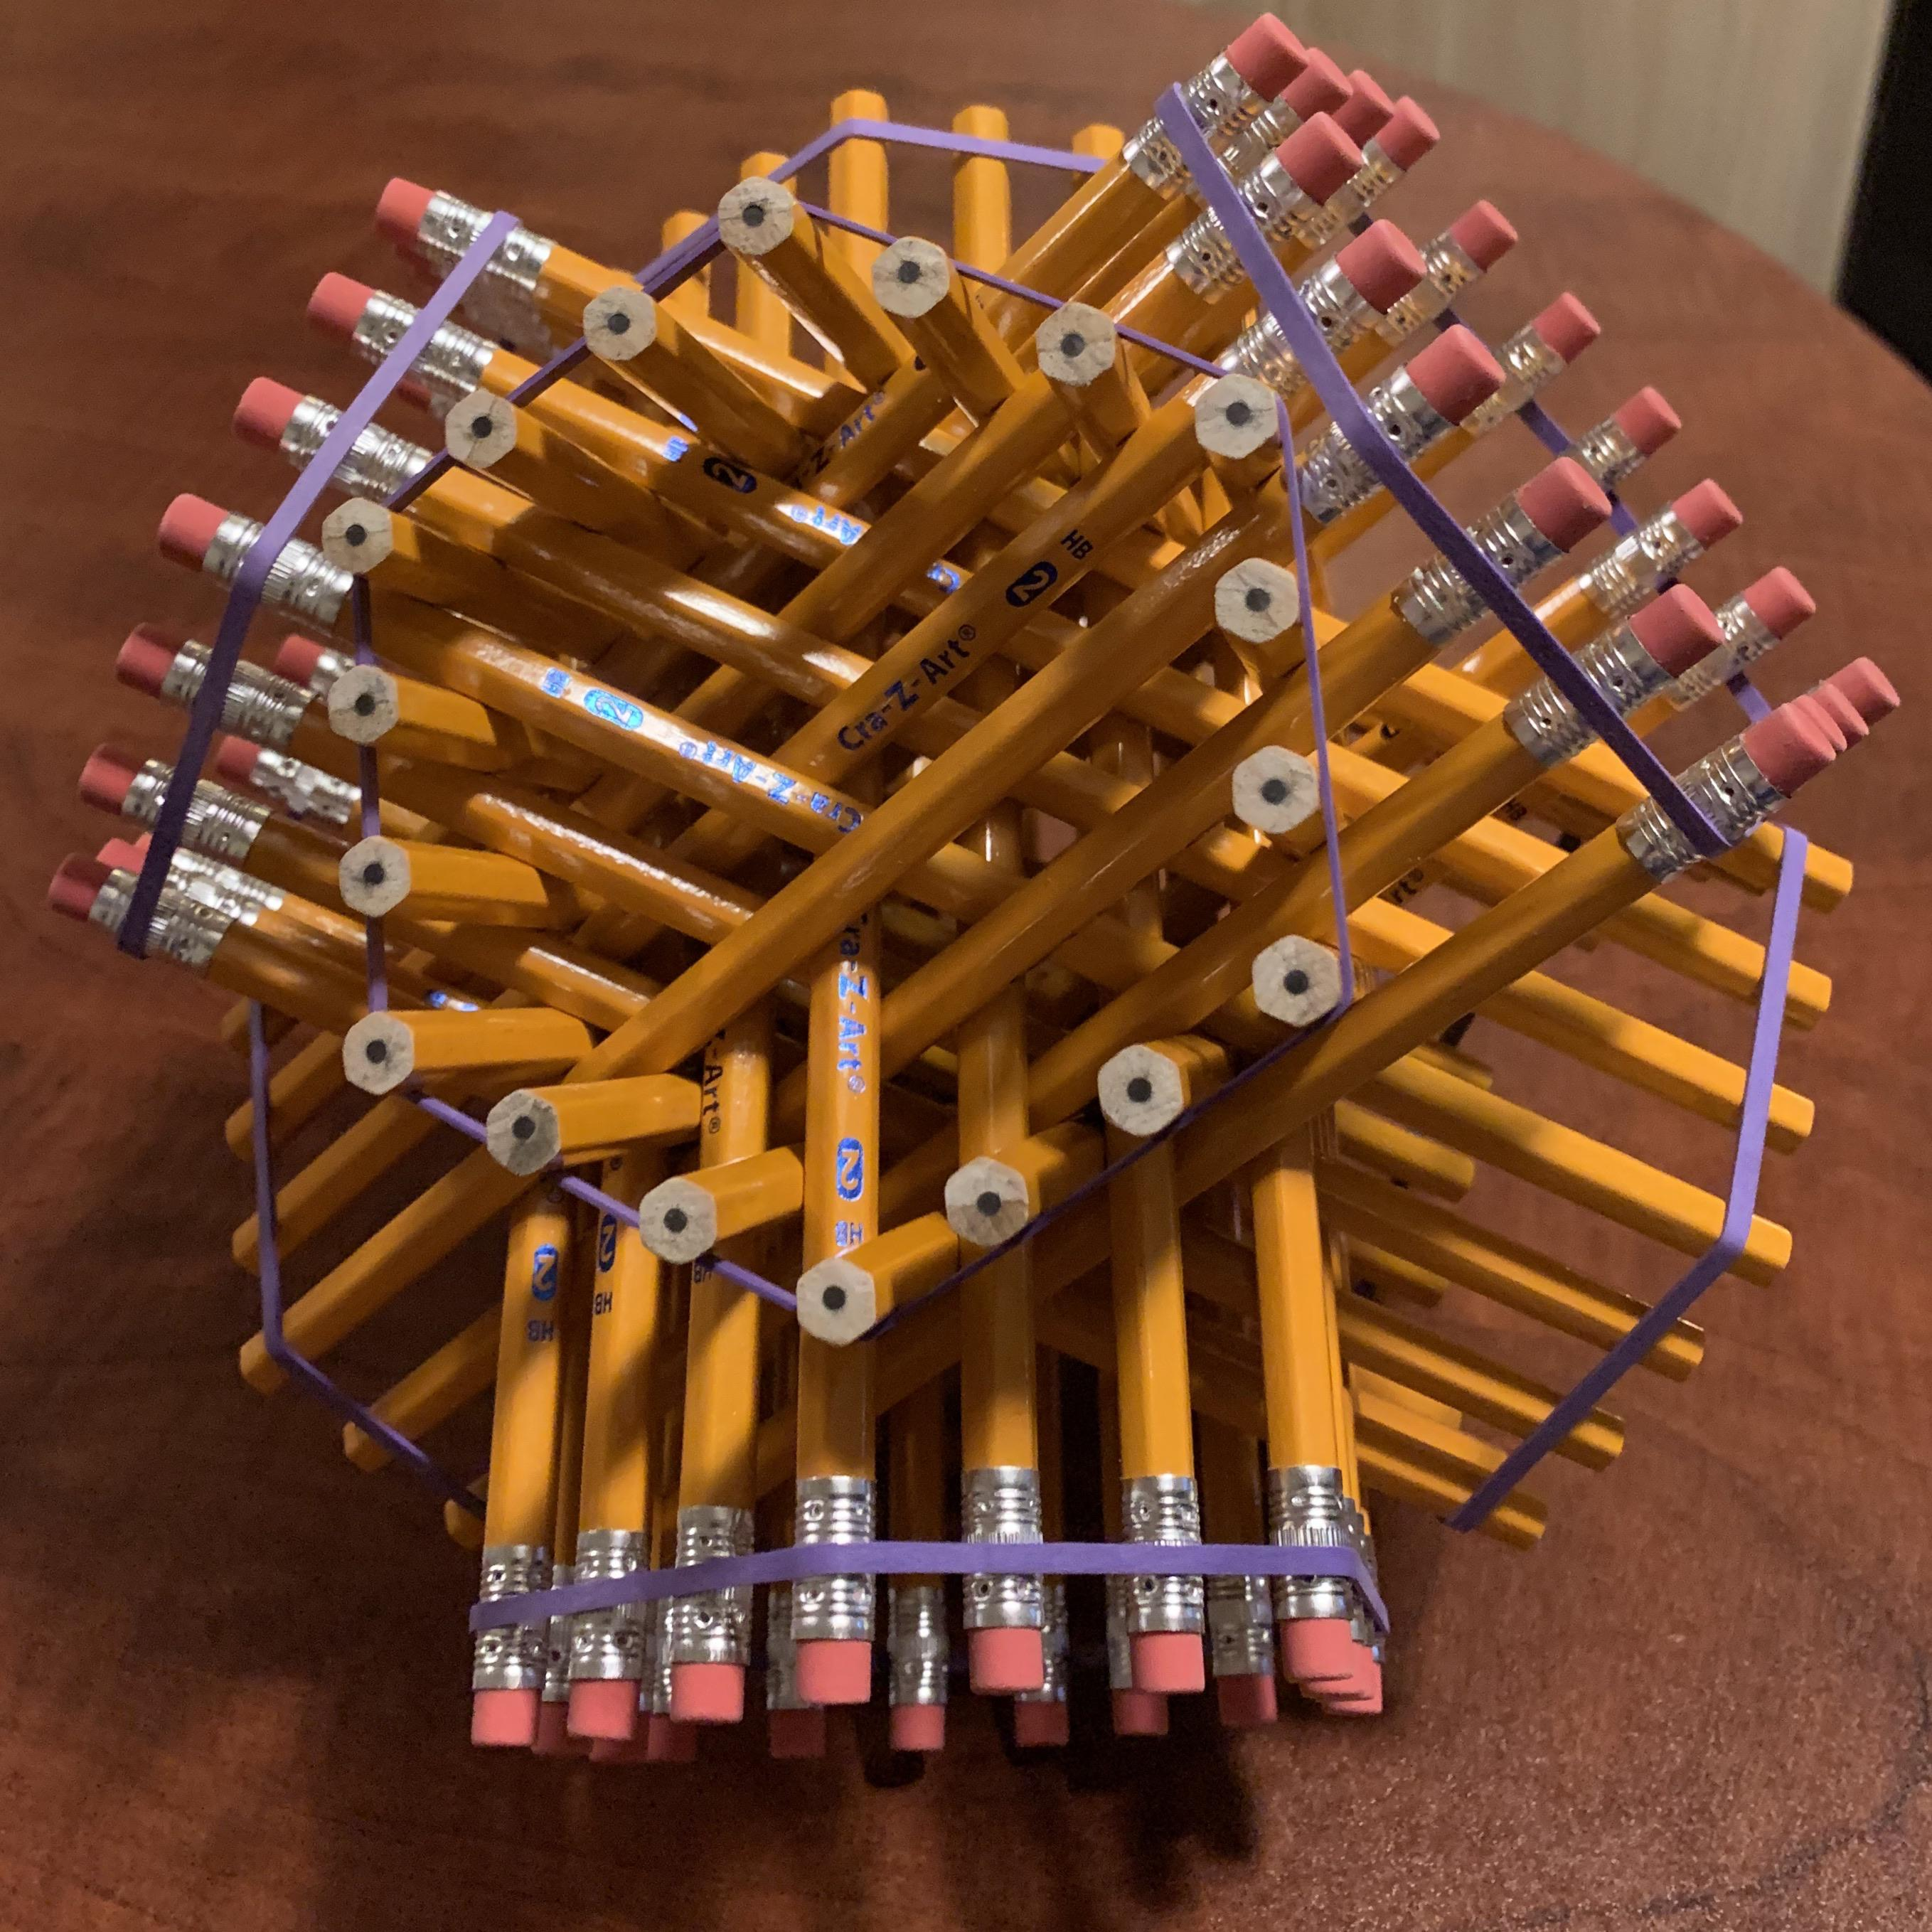 I made a Hexastix